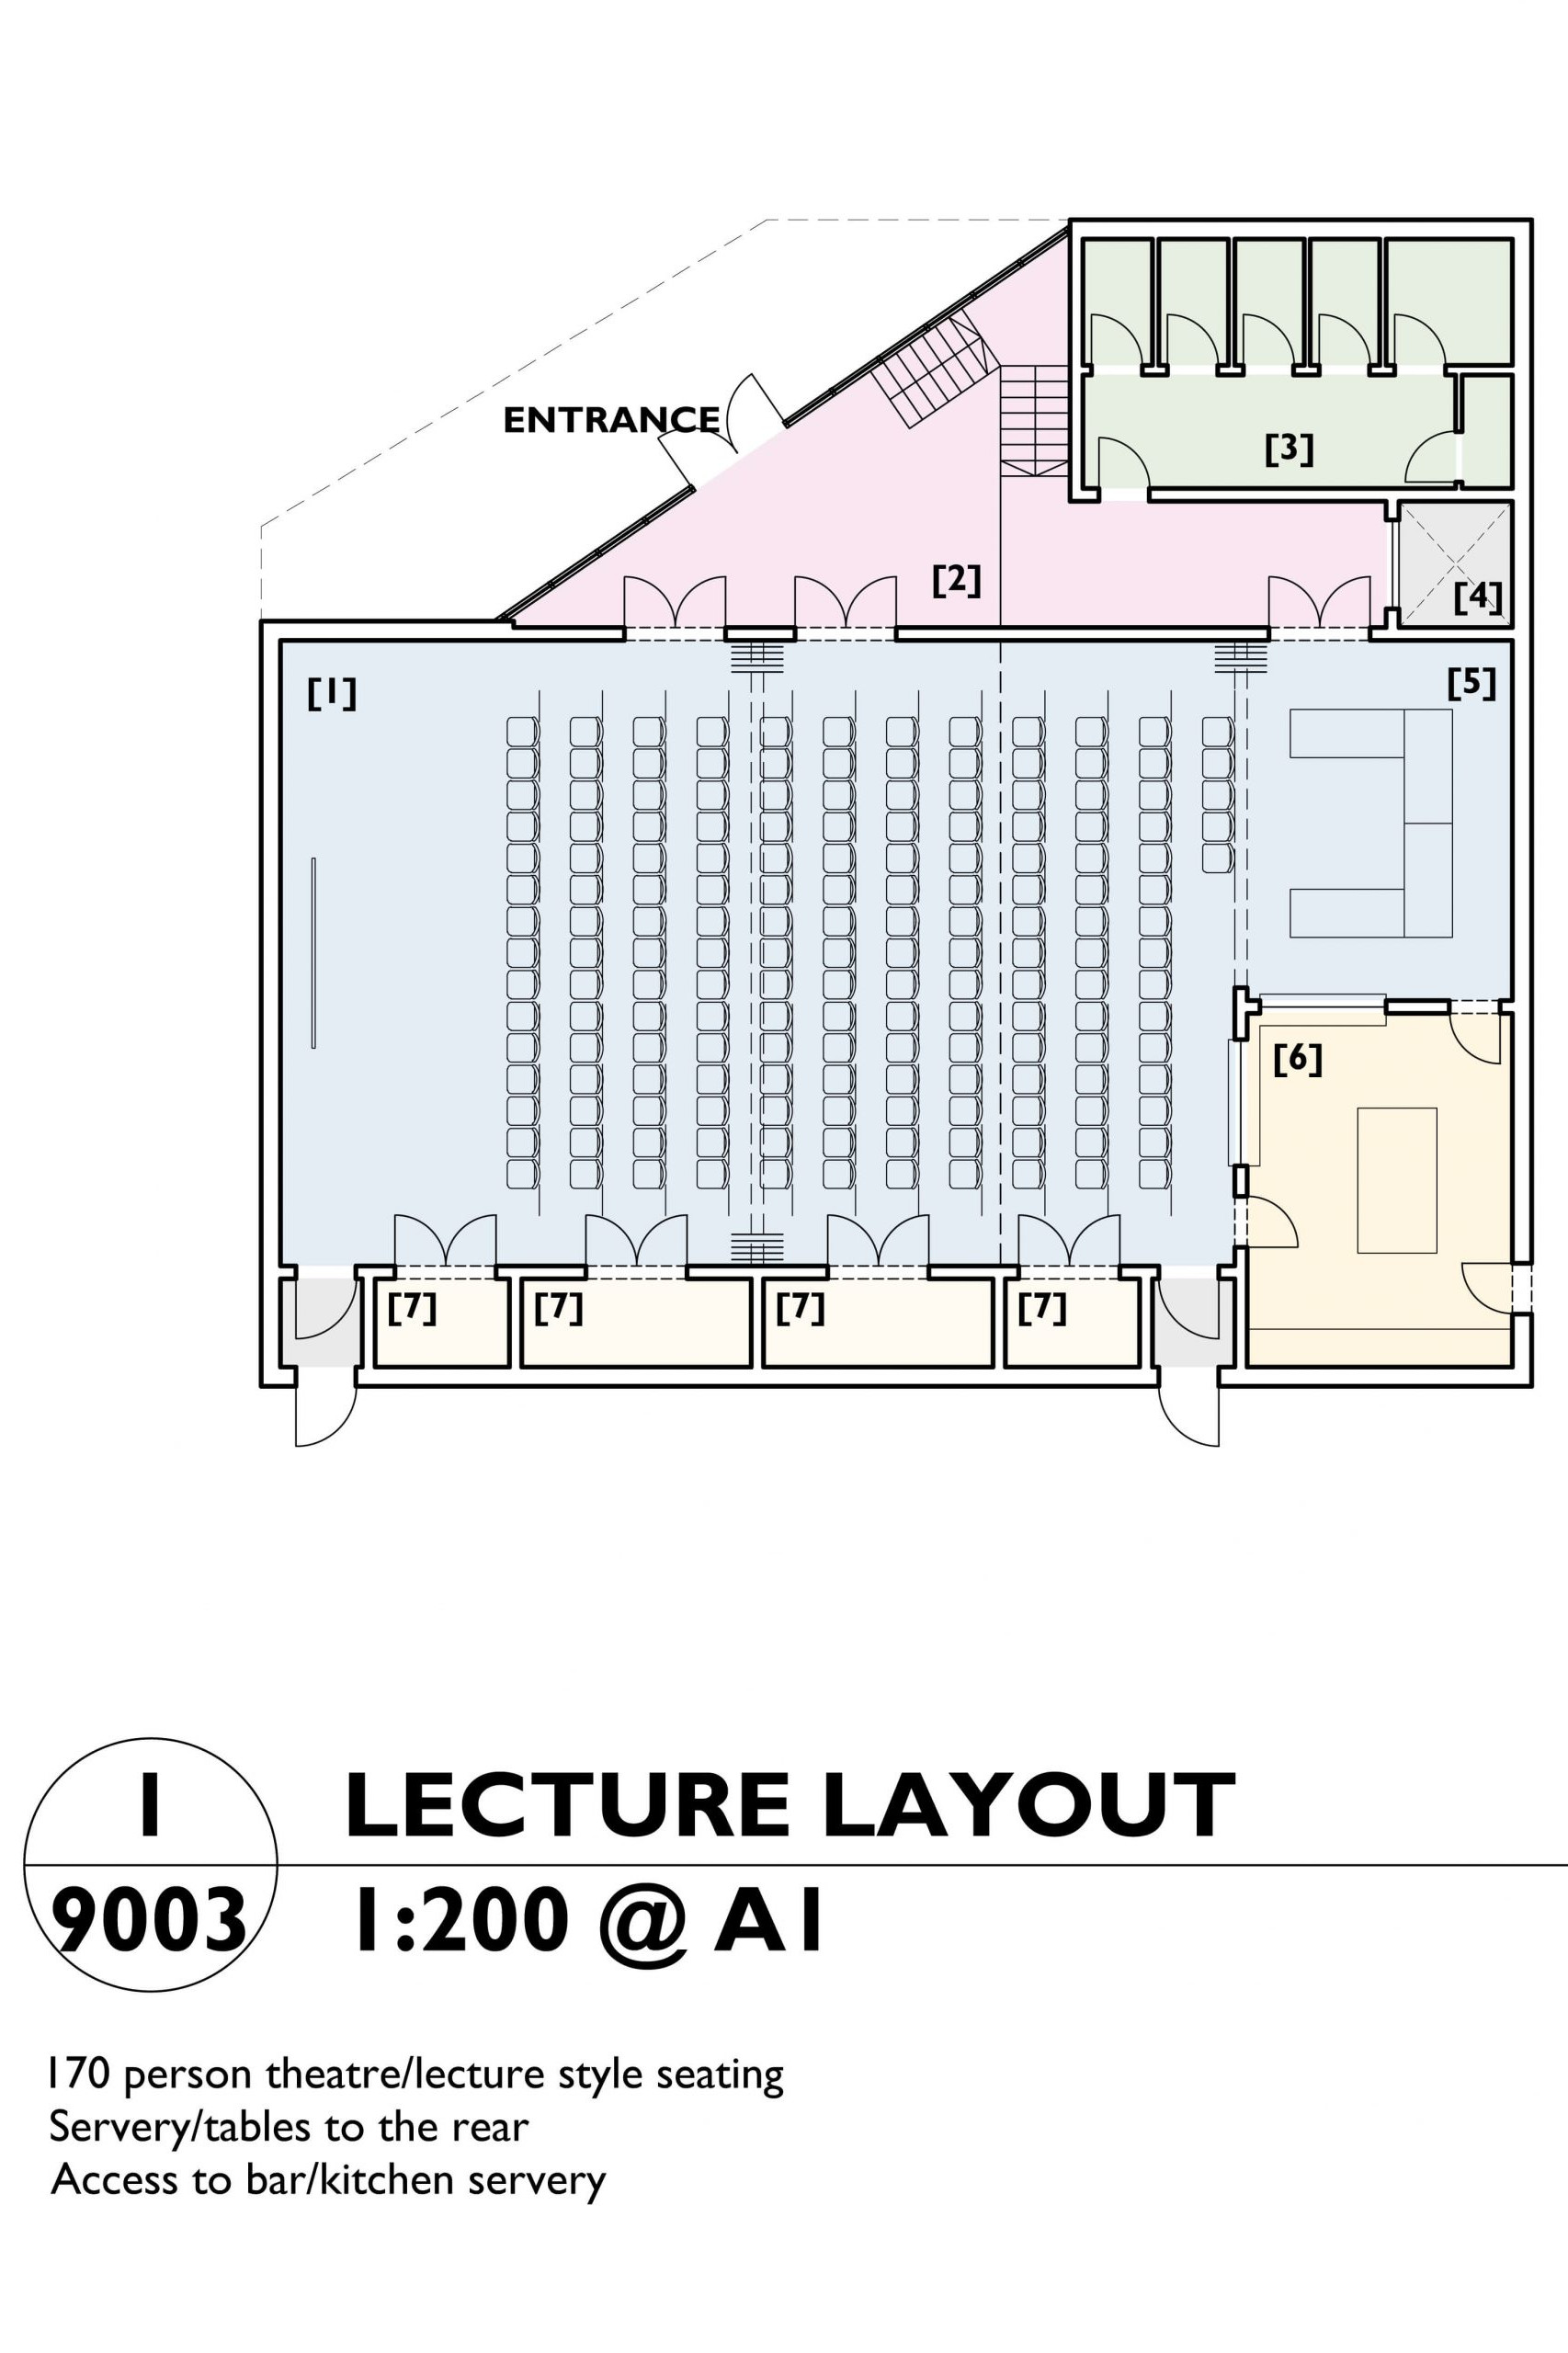 Image showing the lecture layout plan of the Mill Arts Centre